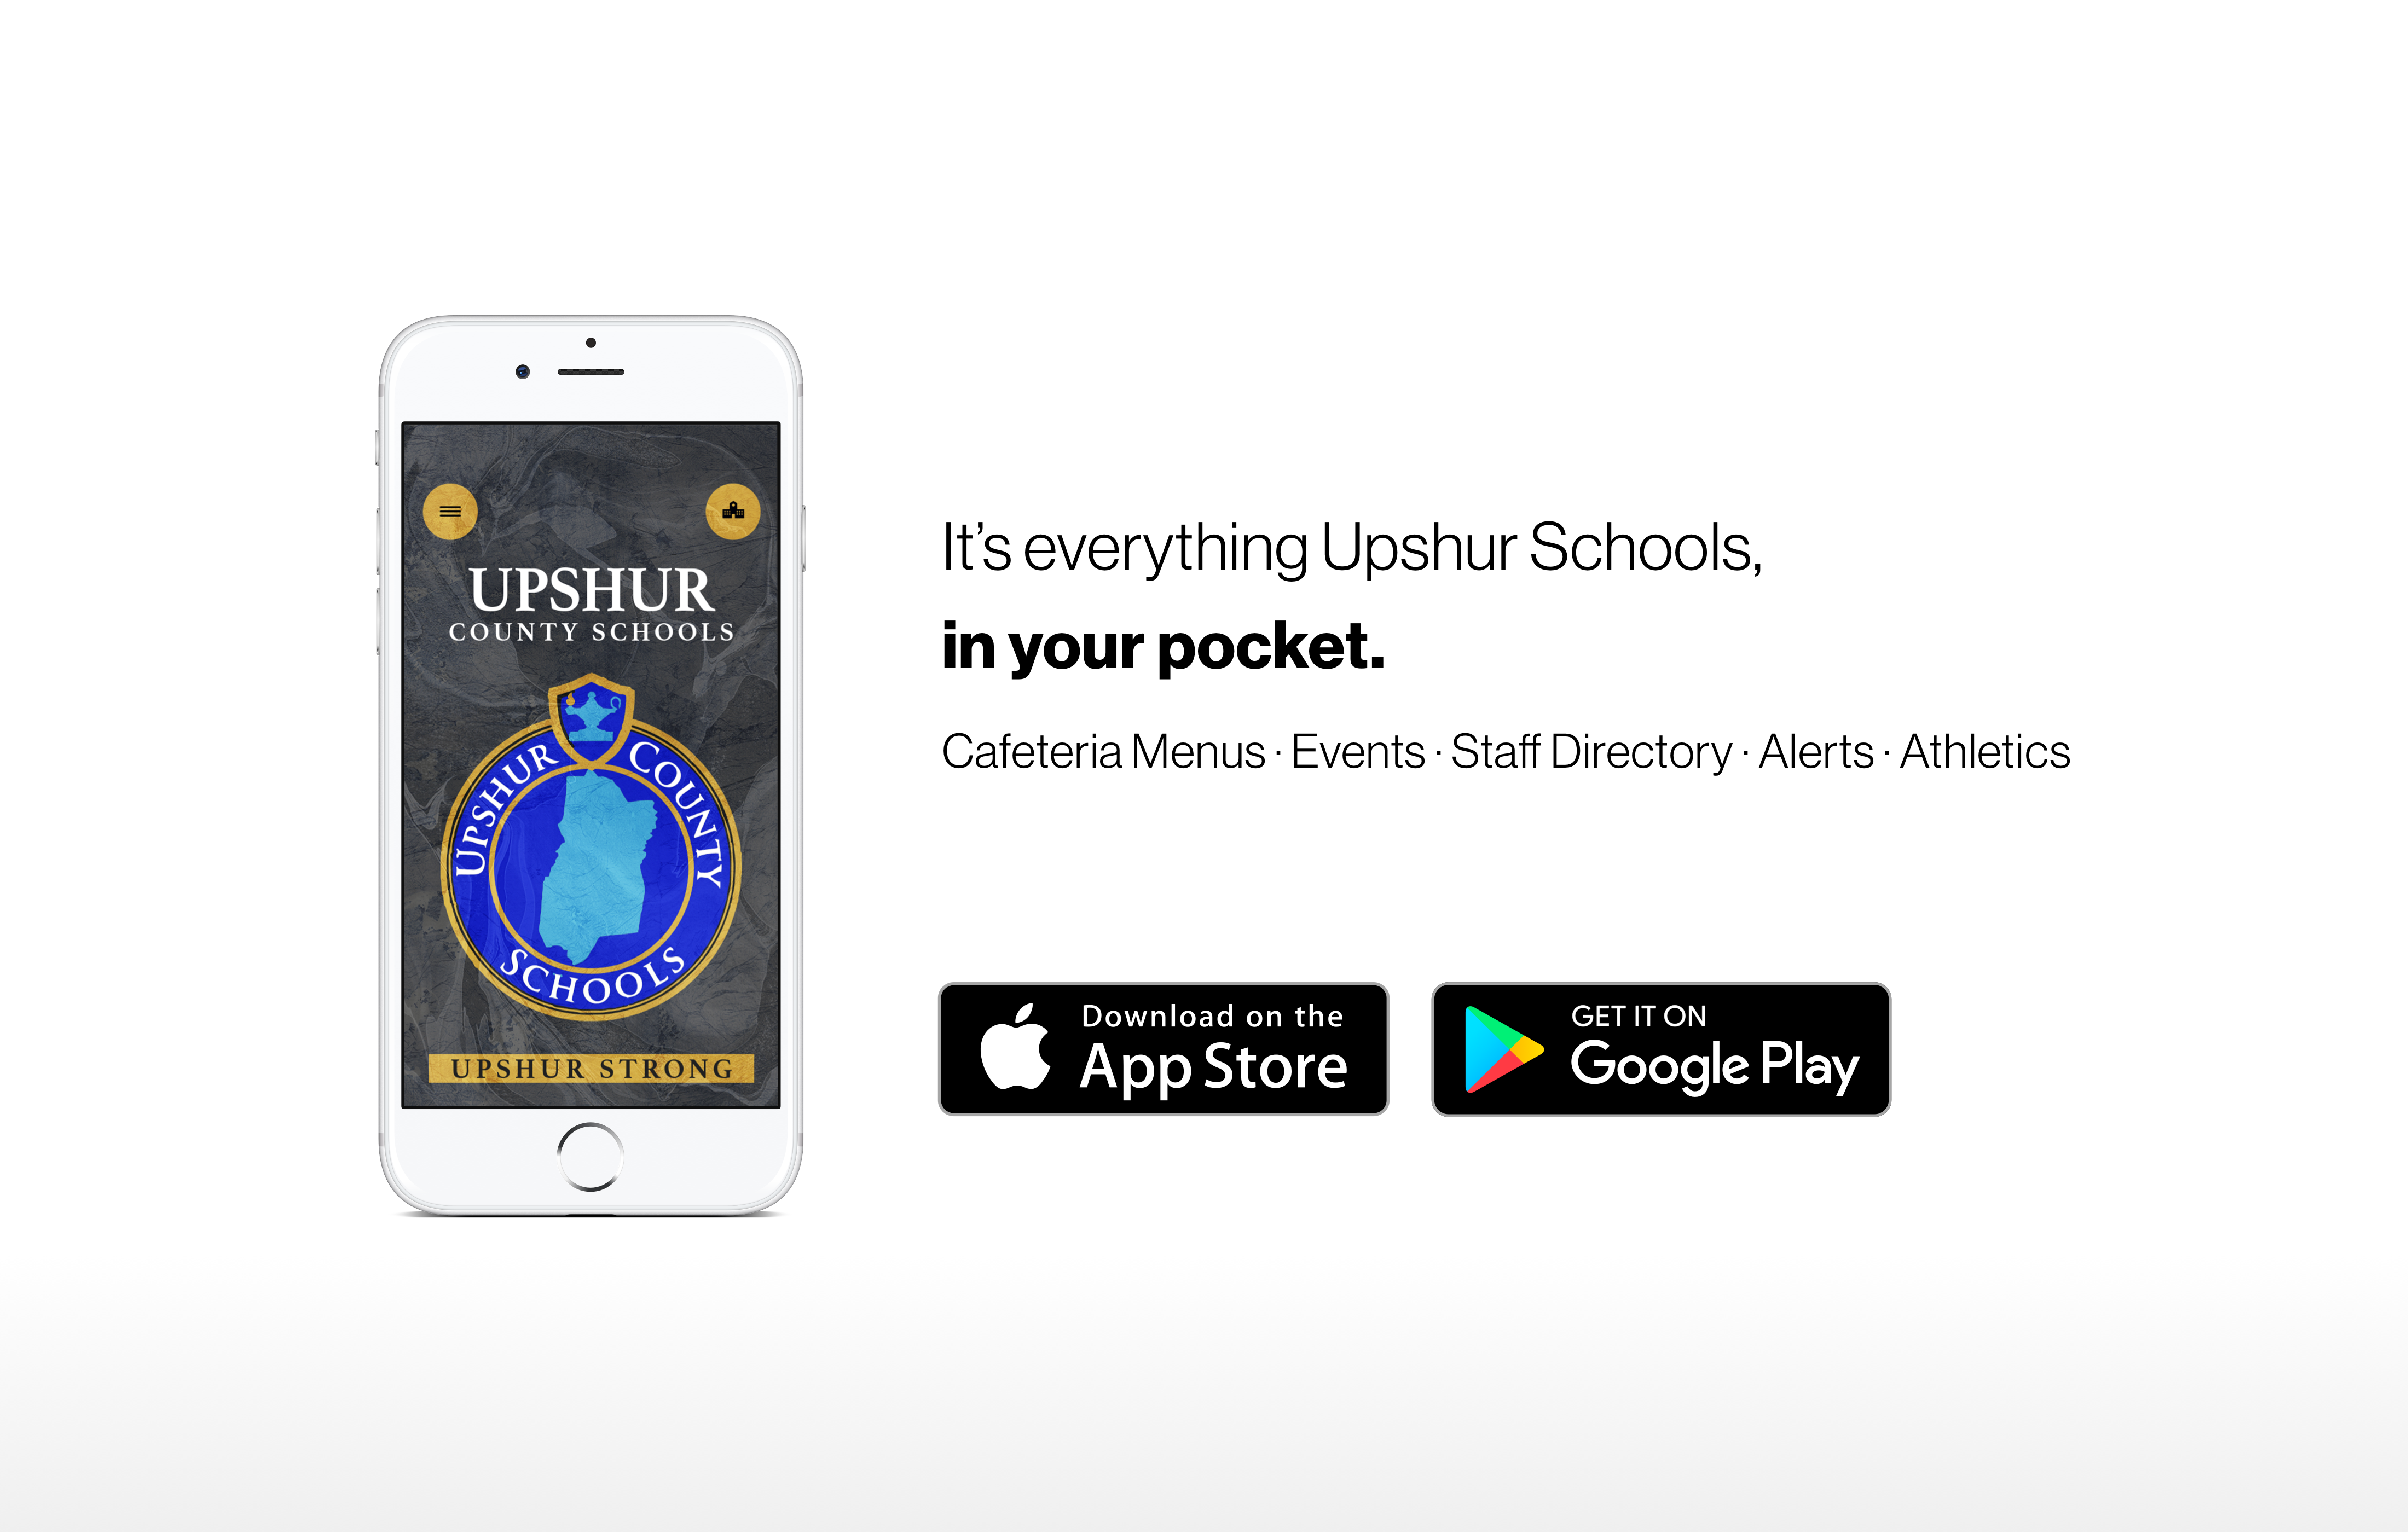 Download Upshur Schools app